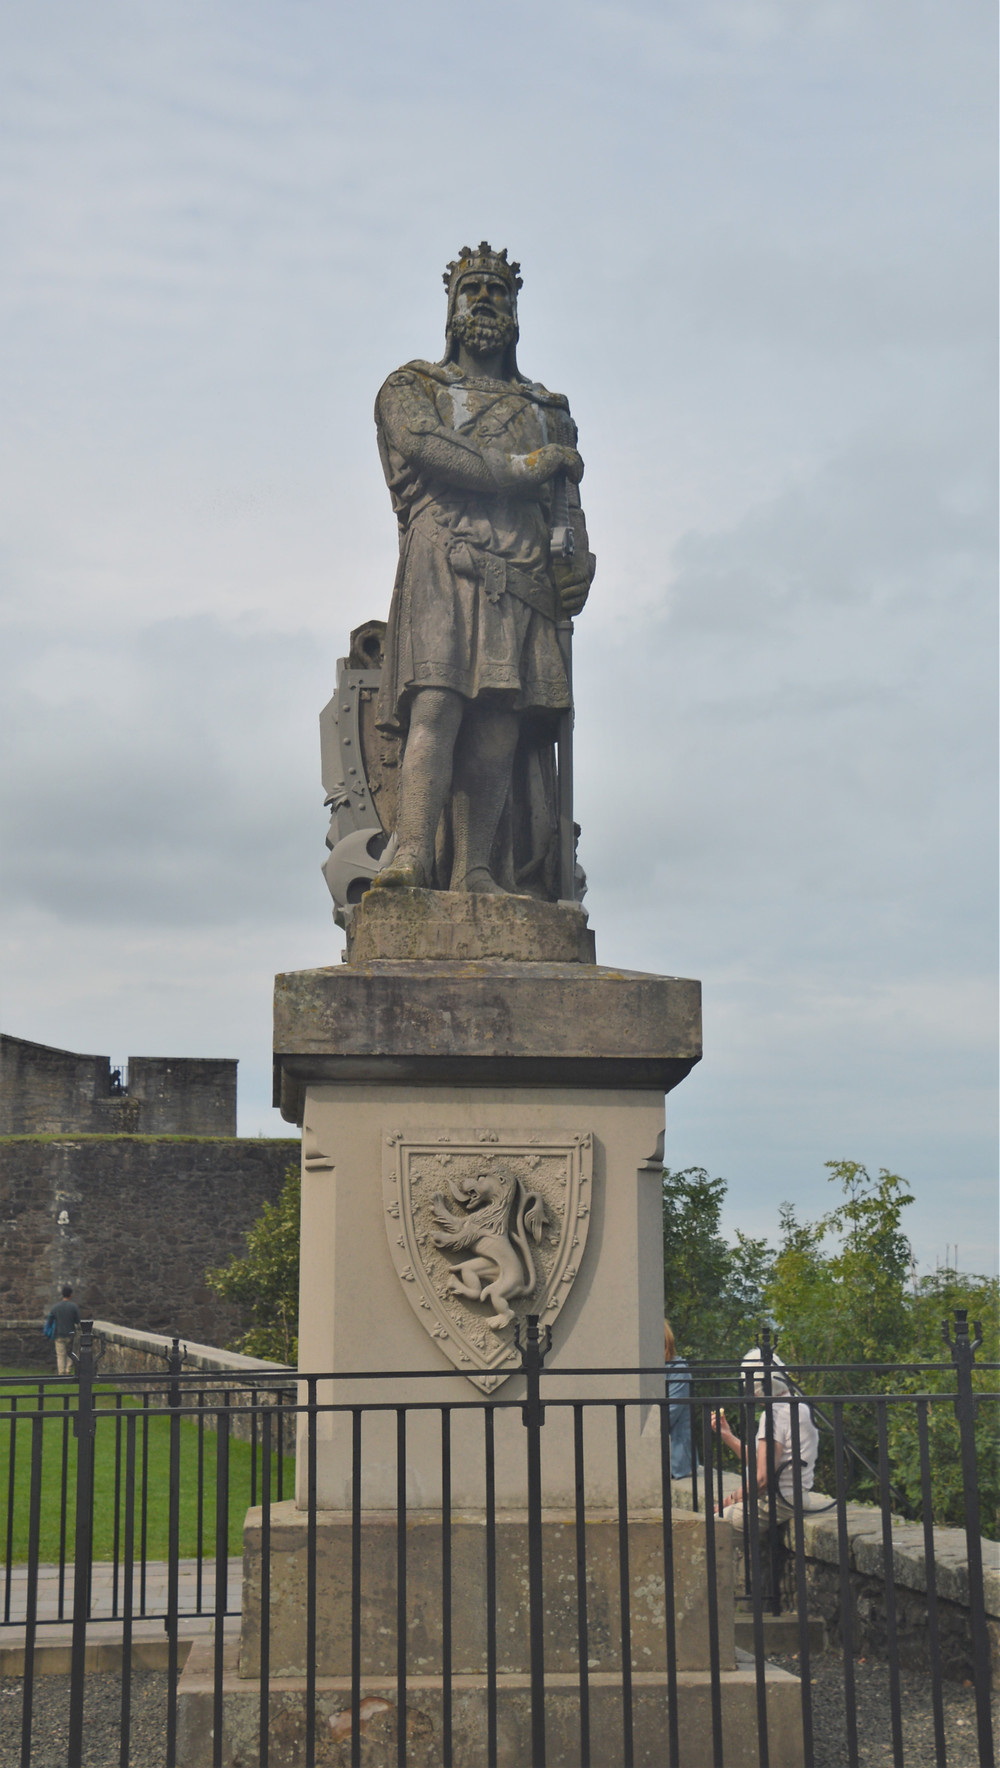 A statue of Robert the Bruce (Robert I) at the entrance to Stirling Castle in Scotland